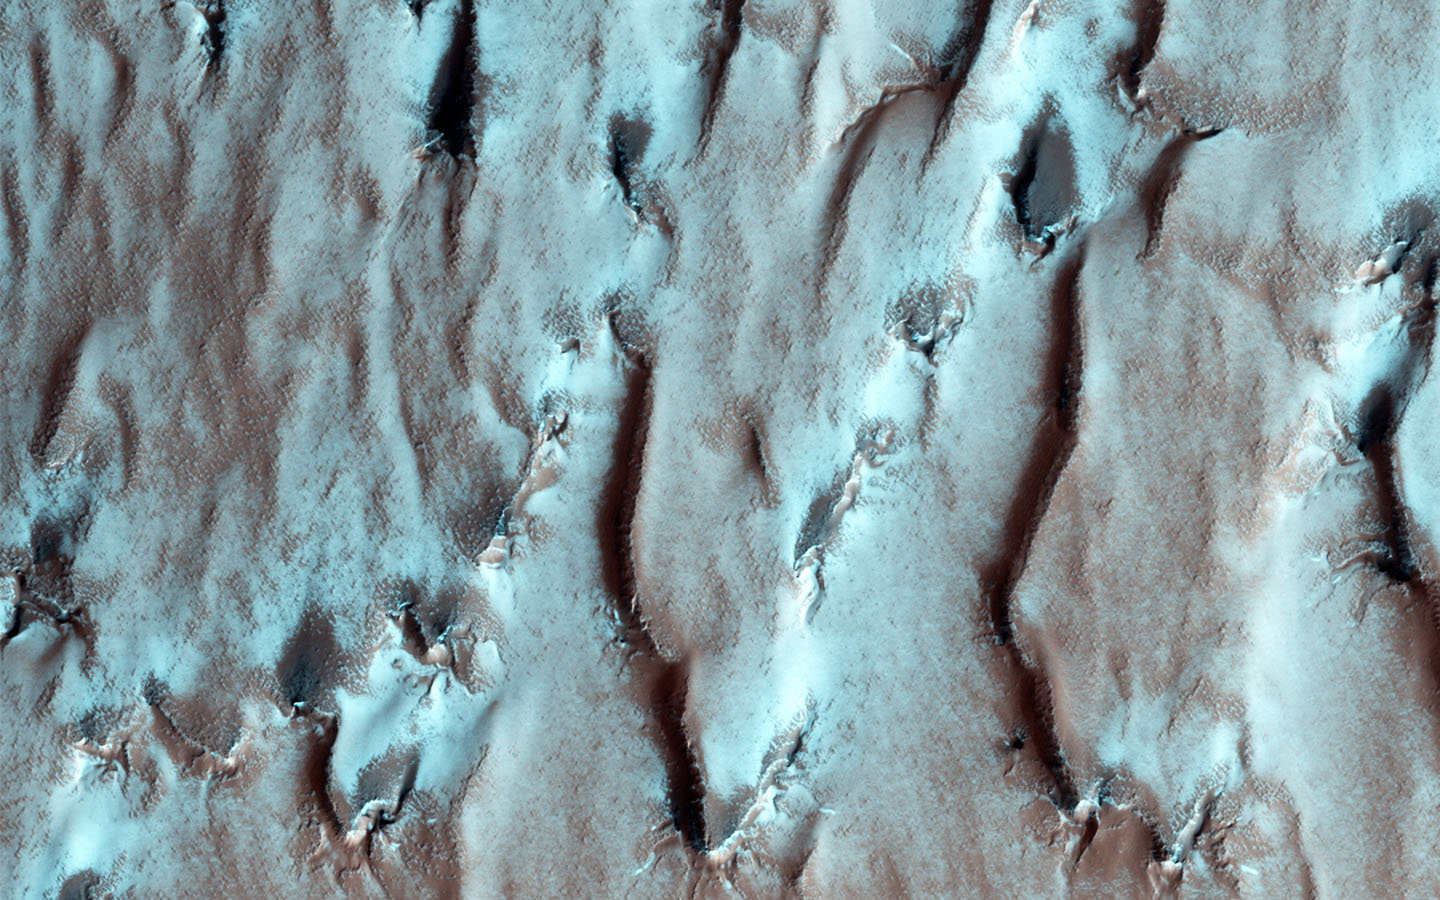 This image from NASA's Mars Reconnaissance Orbiter shows the edge of the Martian South Polar layered deposit. The stack of fine layering is highlighted by the rays of the polar sun.